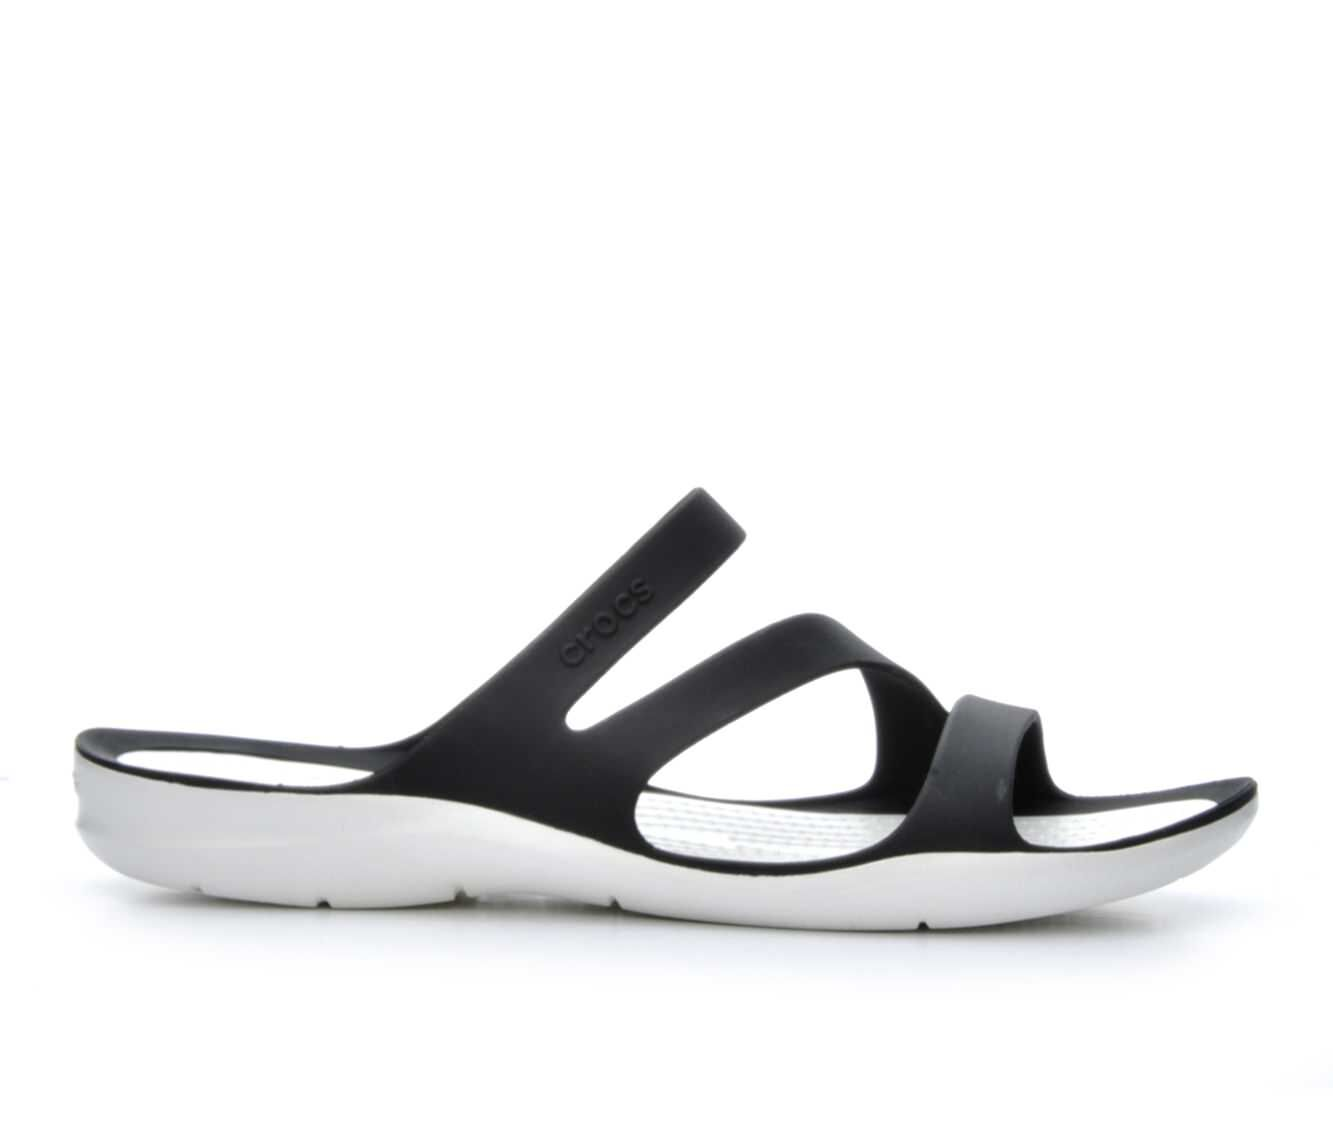 Women's Crocs Swiftwater Strappy Sandals Black/White